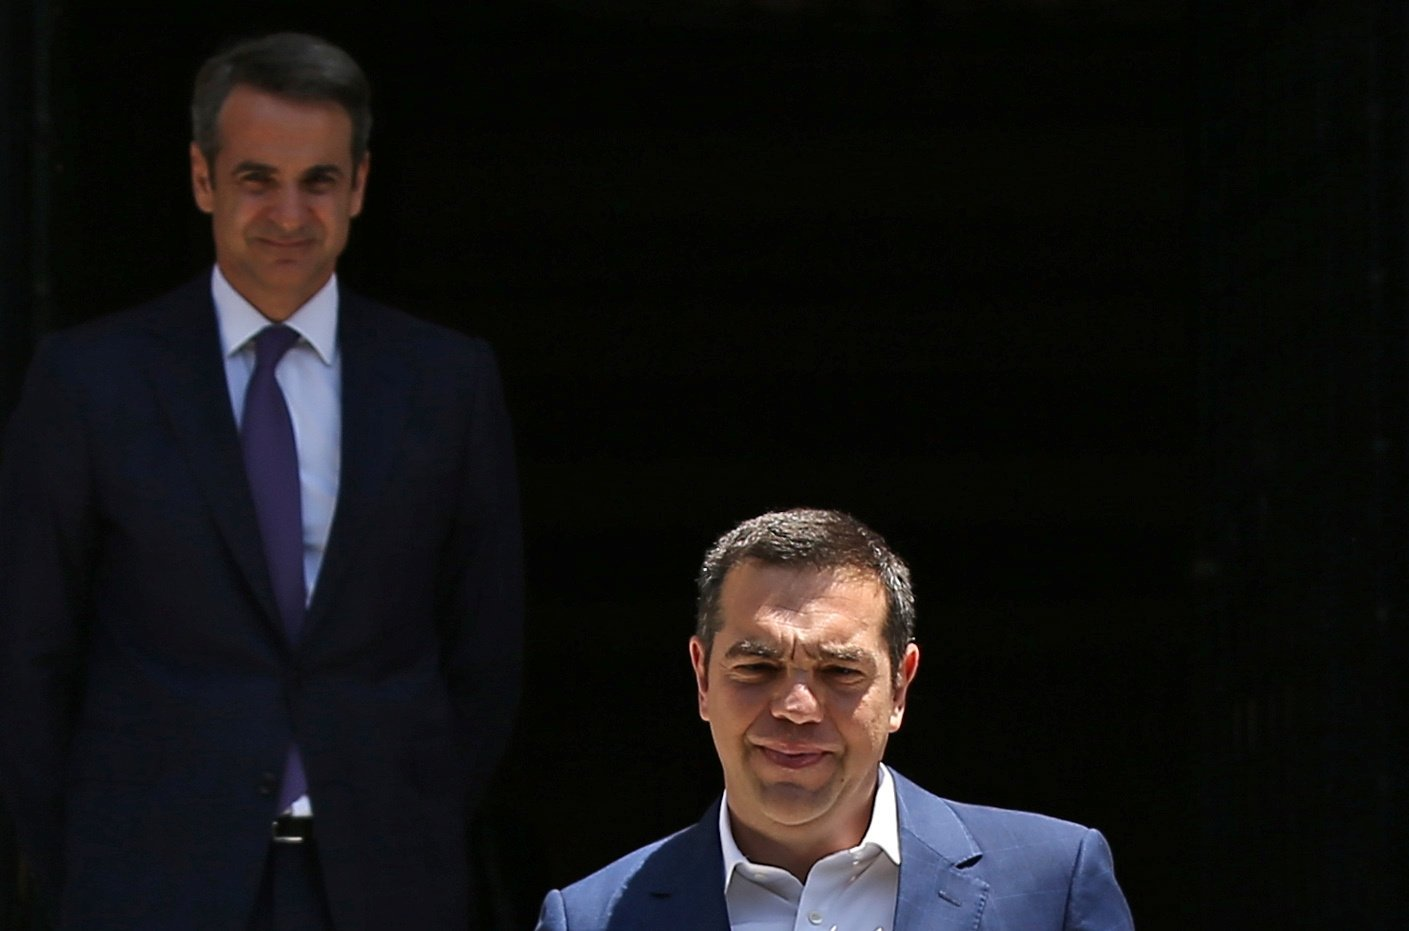 Outgoing Prime Minister Alexis Tsipras leaves the Maximos Mansion after a meeting with newly-appointed Greek Prime Minister Kyriakos Mitsotakis, in Athens, Greece, July 8, 2019. (Reuters Photo)